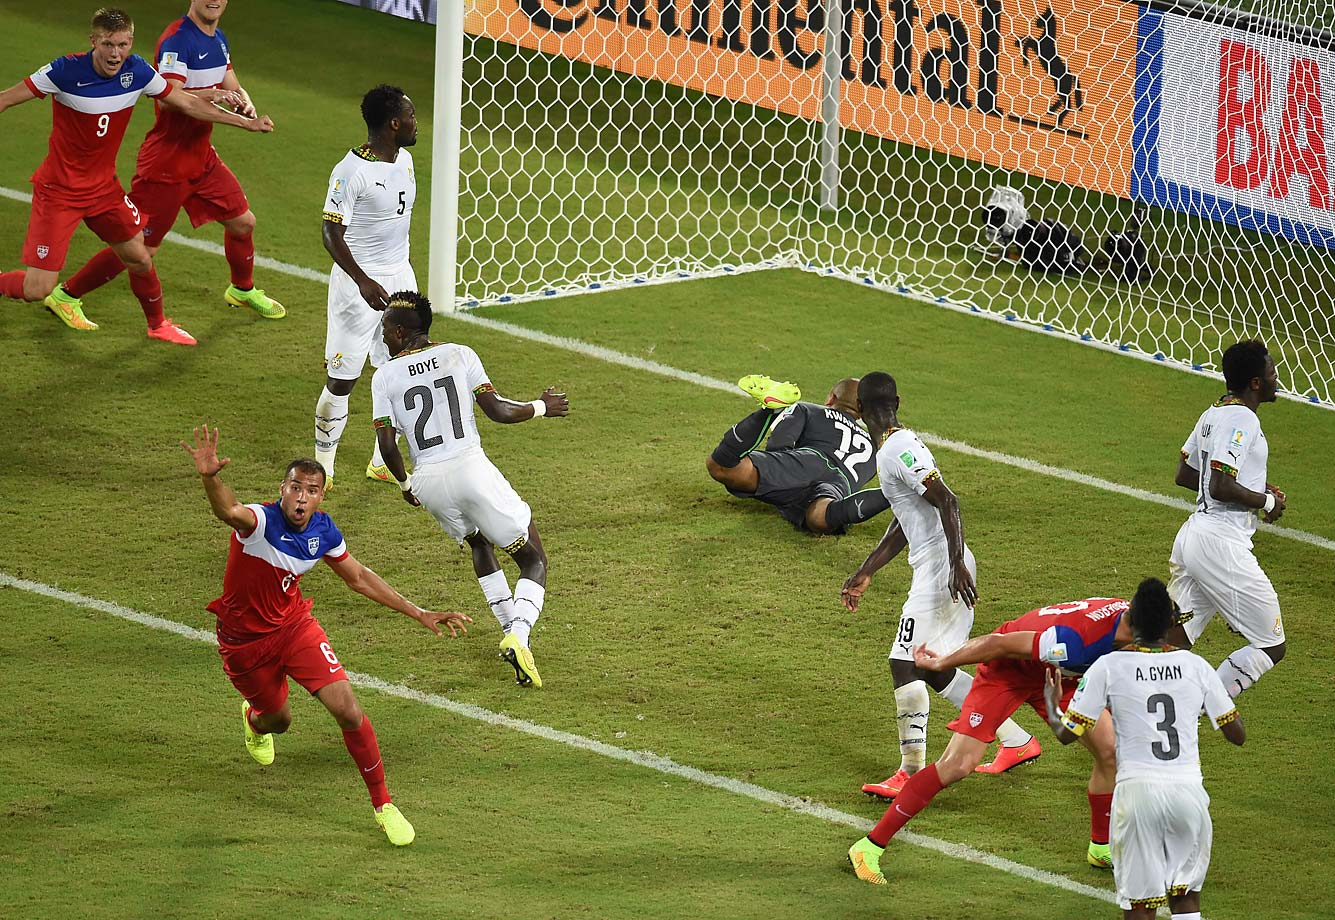 John Brooks game winner on a header in the 86th minute of a 2-1 victory over Ghana will go down as one of the most memorable in U.S. World Cup history. It enabled the U.S. to defeat the team that had knocked it out of the previous two World Cups.